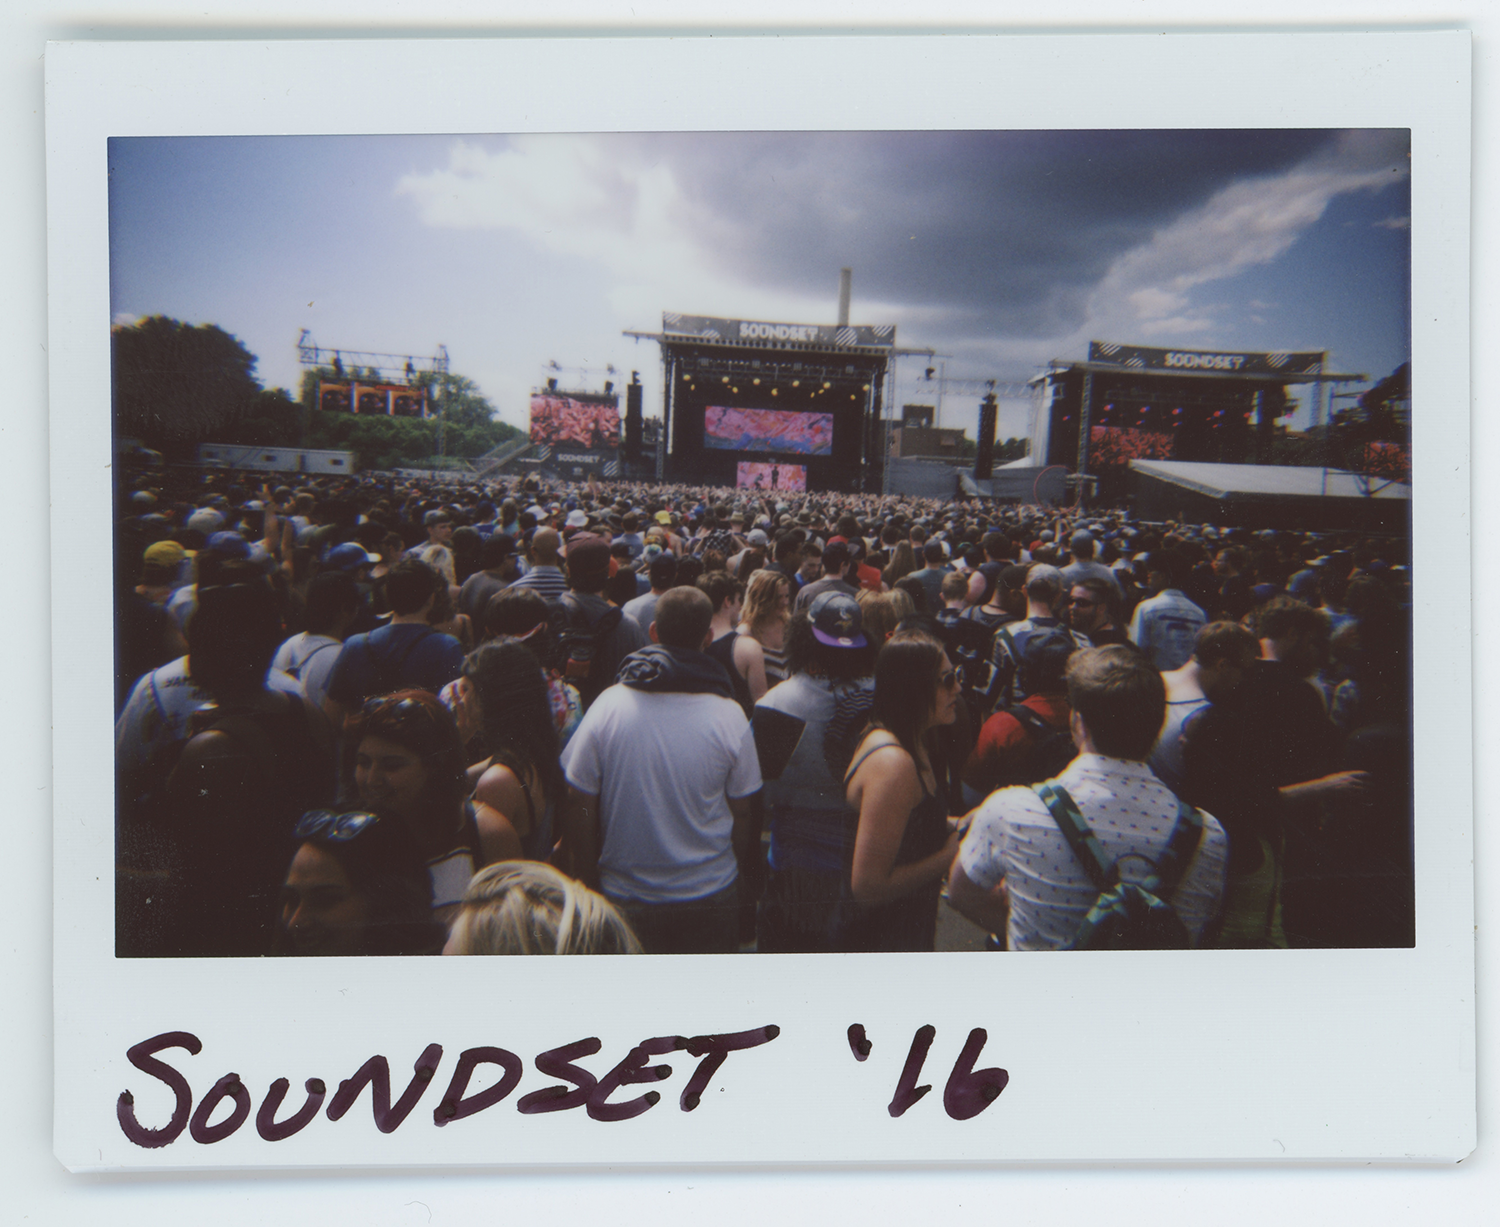 crowd-soundset-2016-polaroid-grungecake-thumbnail